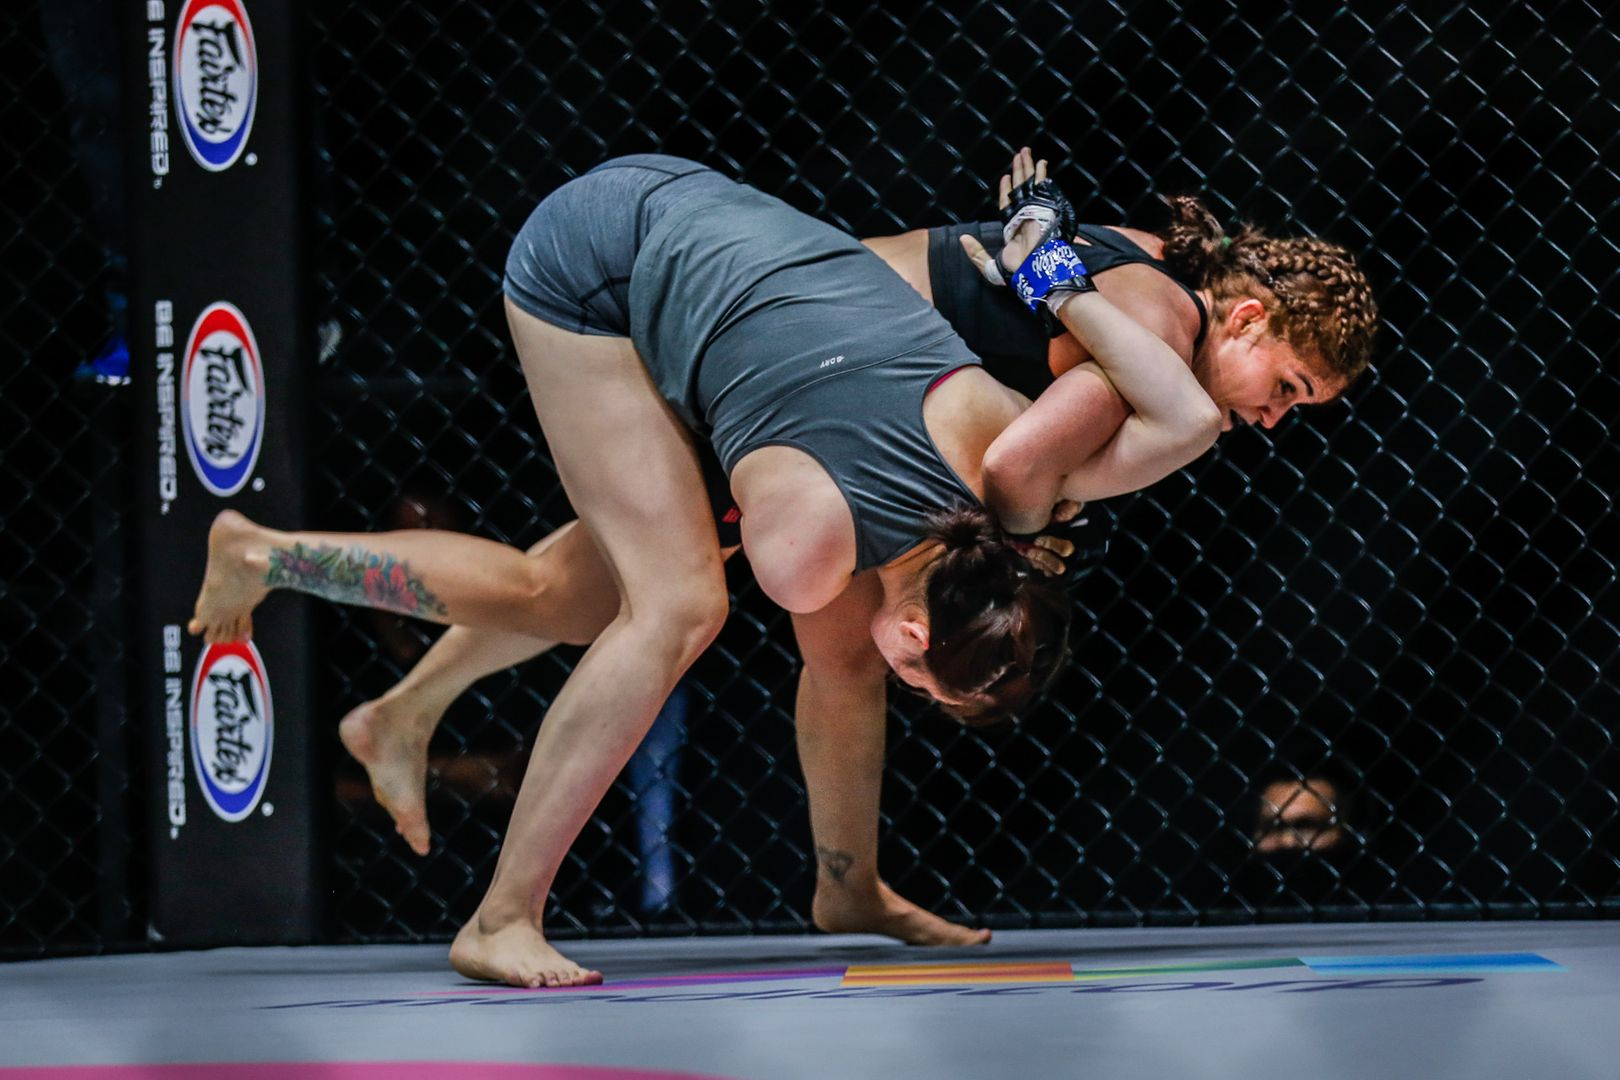 Maira Mazar takes down Jung Yoon Choi. ONE: Inside the Matrix 4 results.